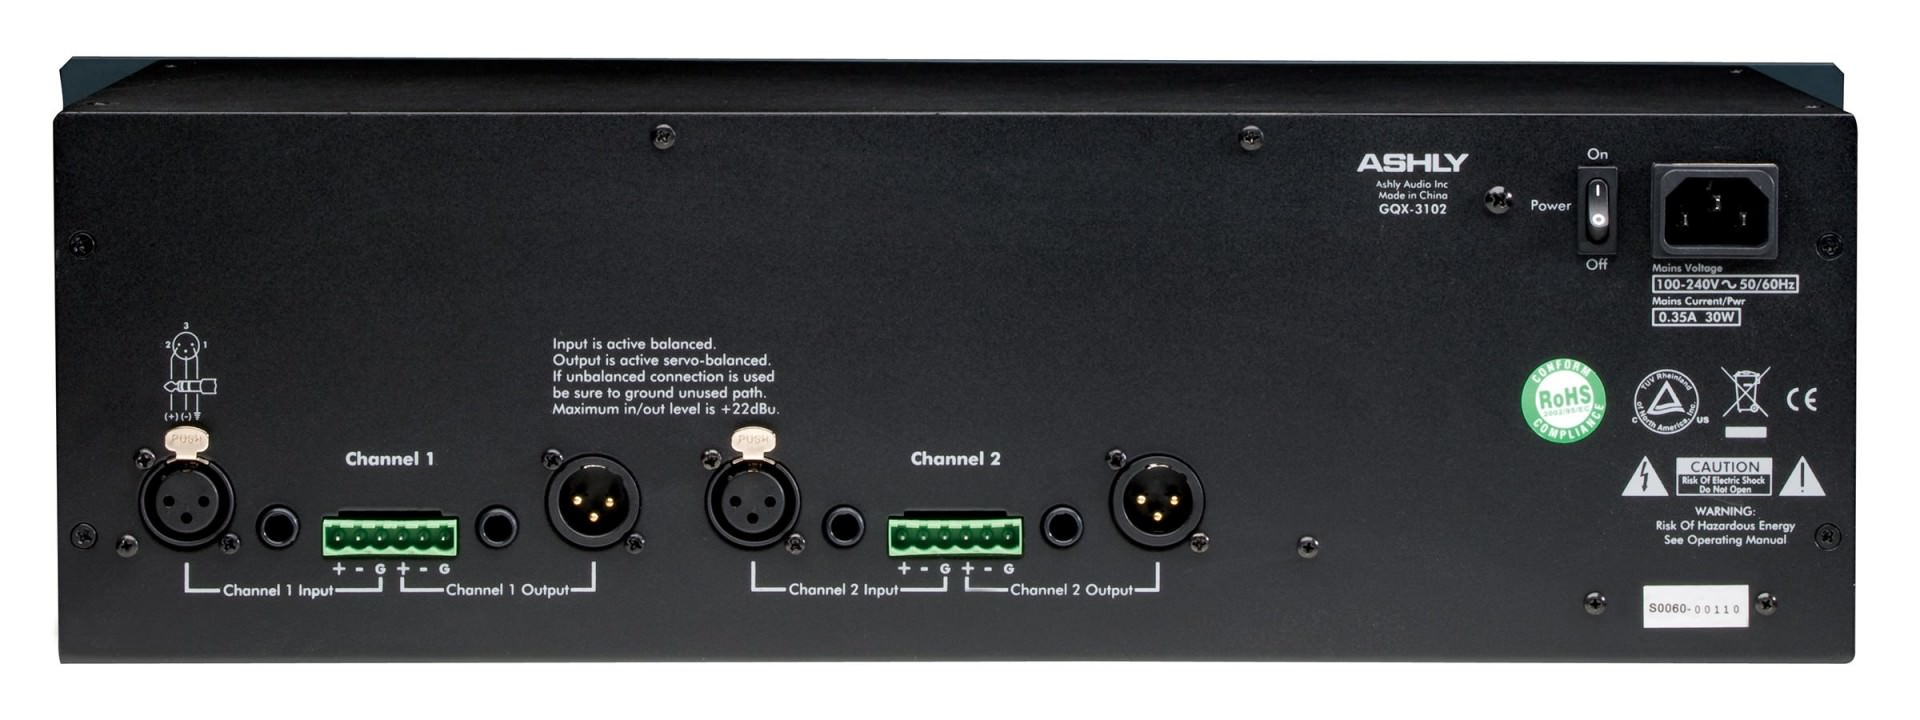 Graphic Equalizers Ashly Audio Band Equalizer Circuit As Well 4 Schematic In 31 Eq